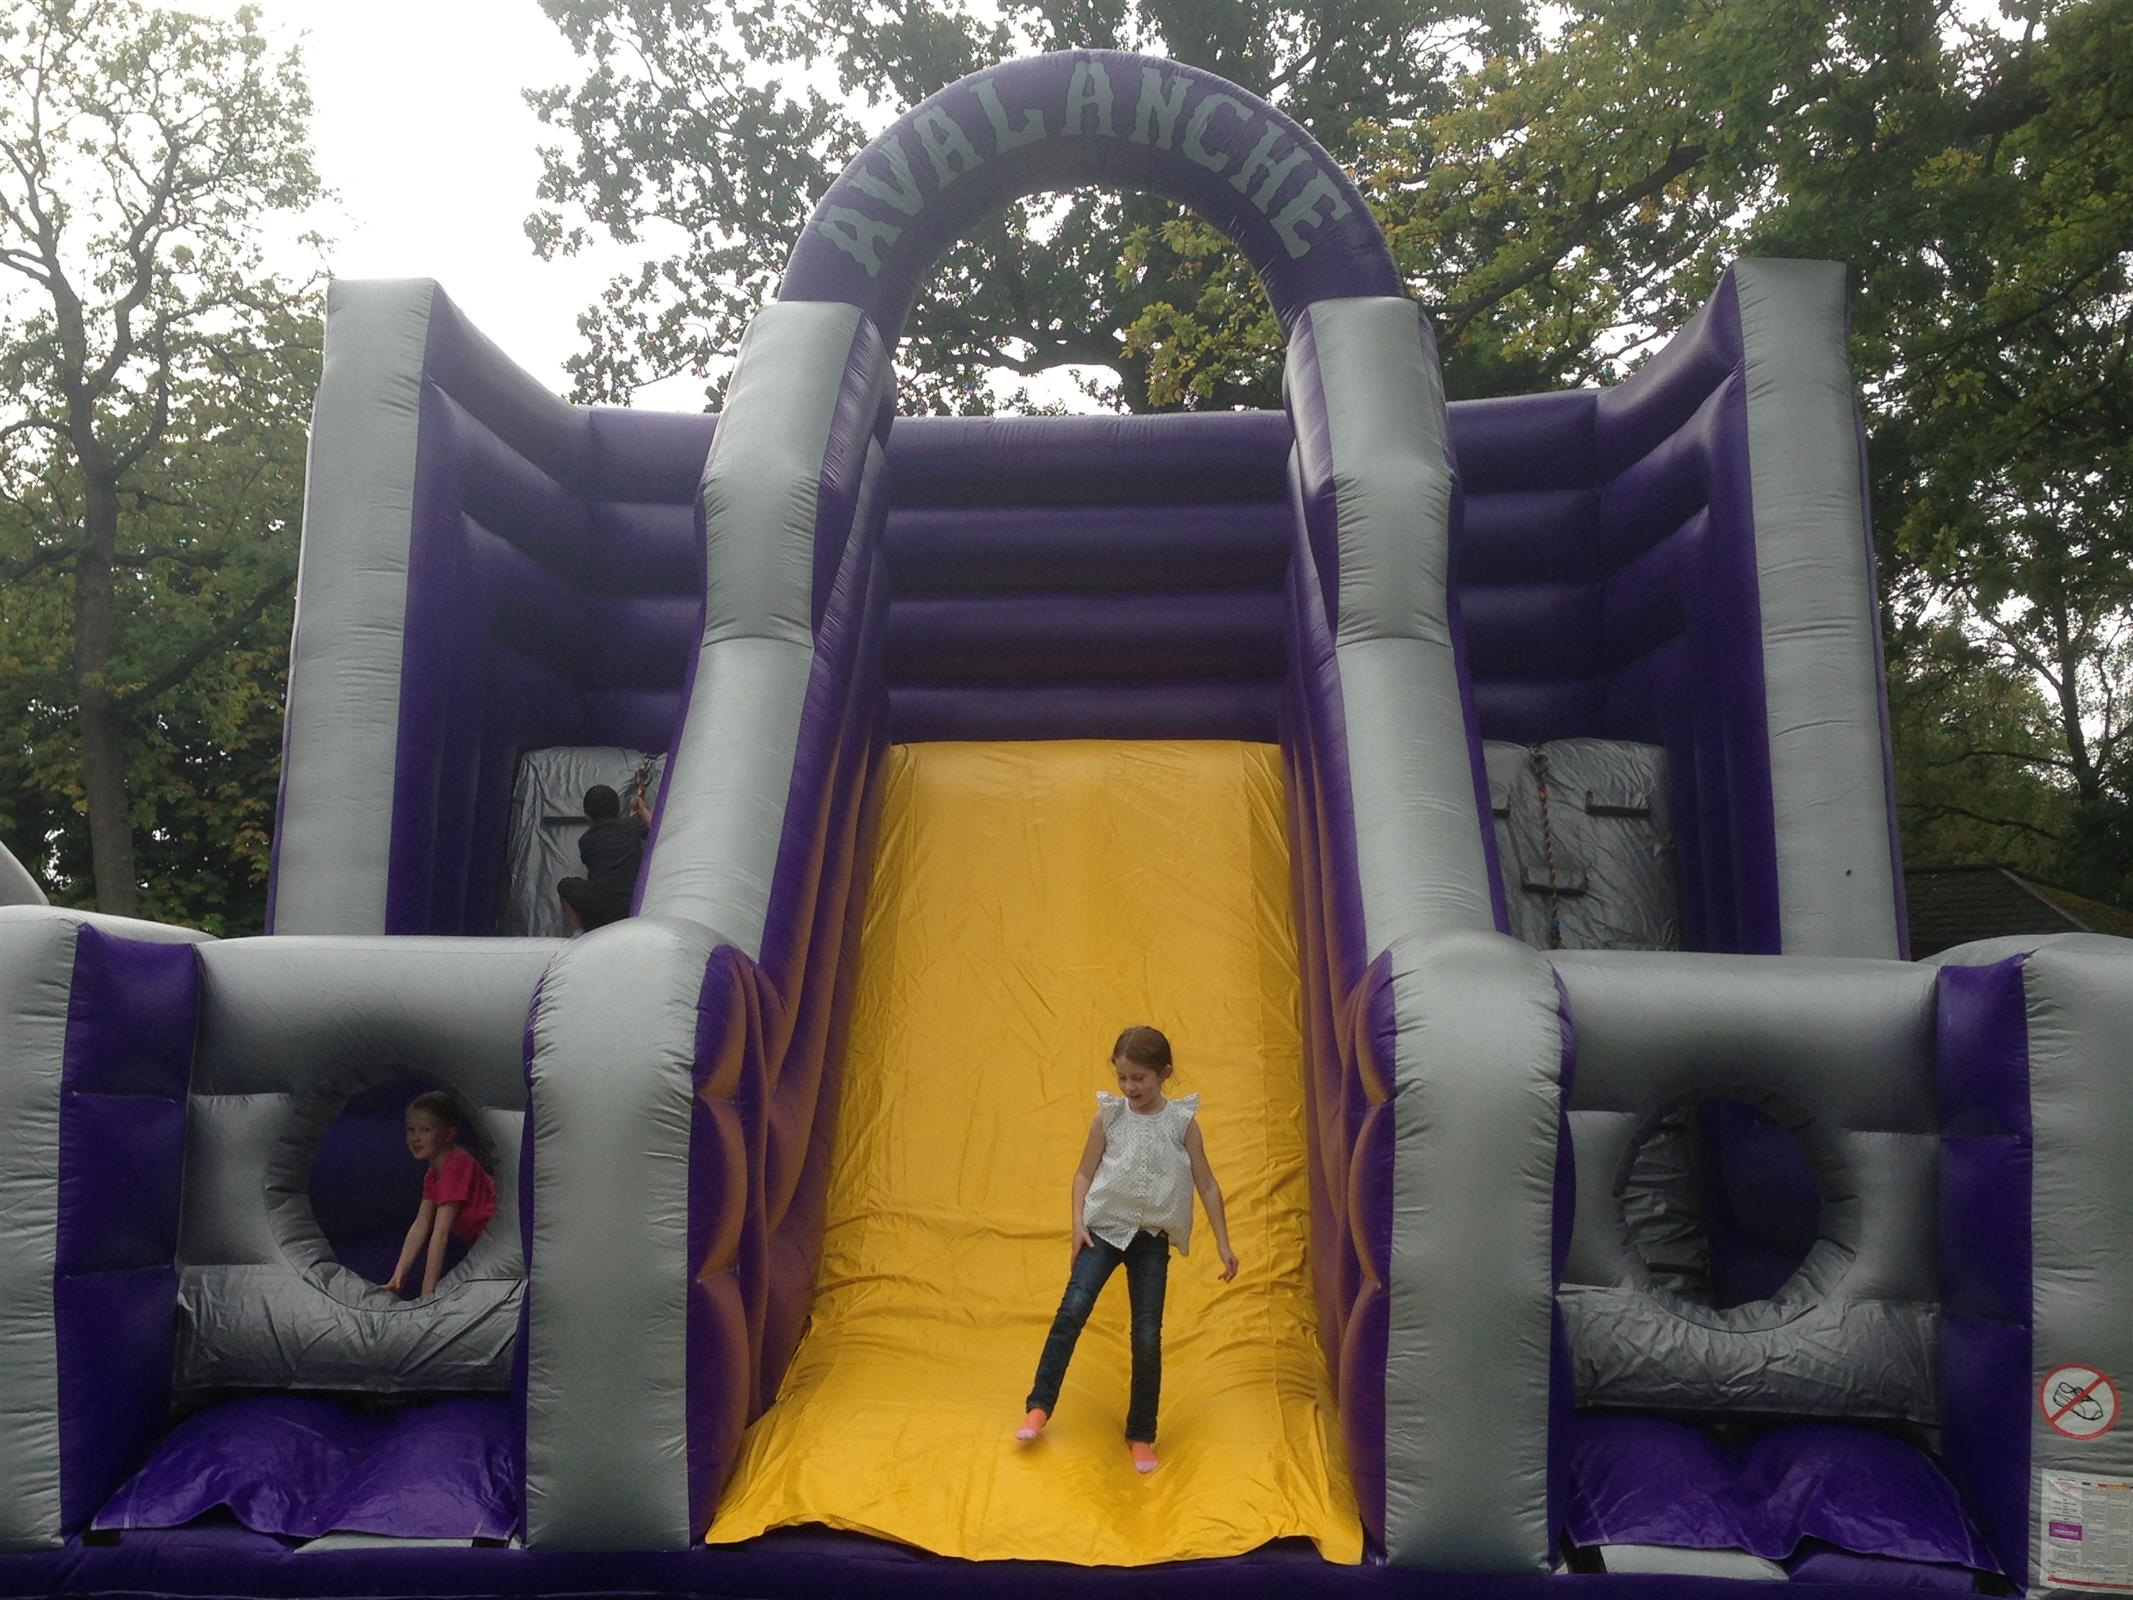 Giant Avalanche Climbing Wall Slide Hire Fife Edinburgh Glasgow